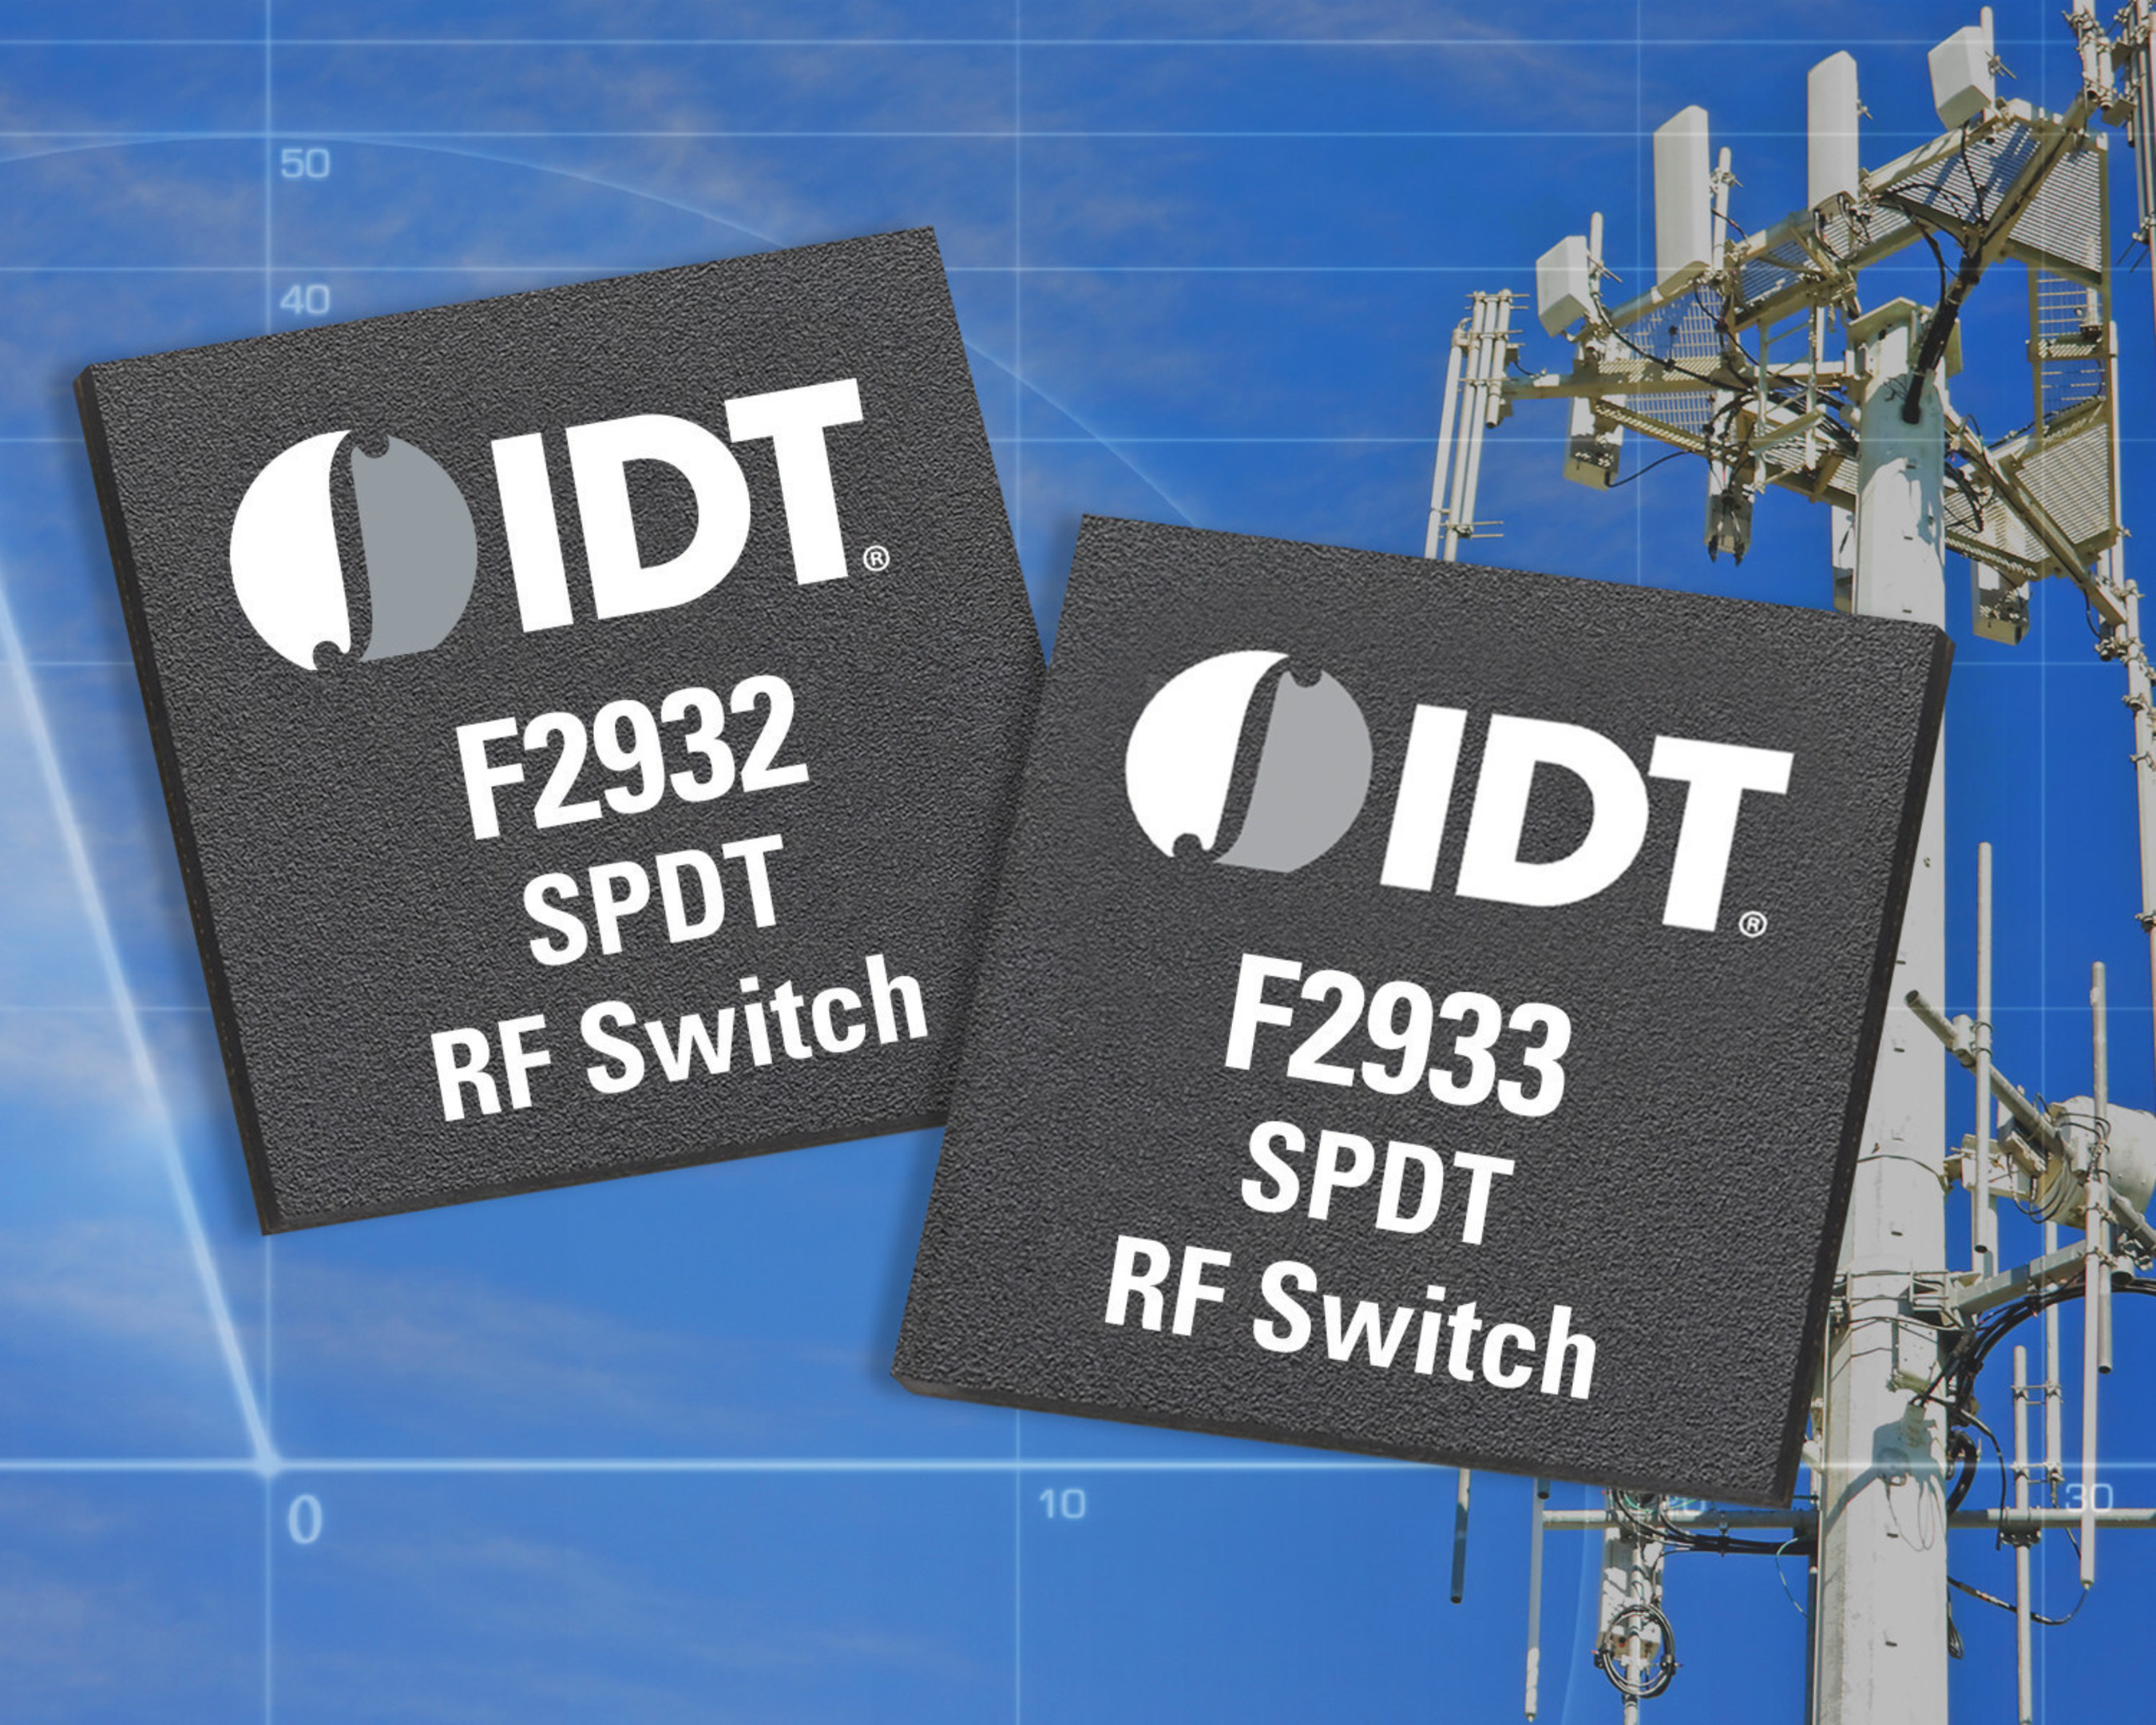 IDT's Latest Broadband RF Switches Deliver Industry-Leading Isolation and Power Handling While Maintaining Low Insertion Loss